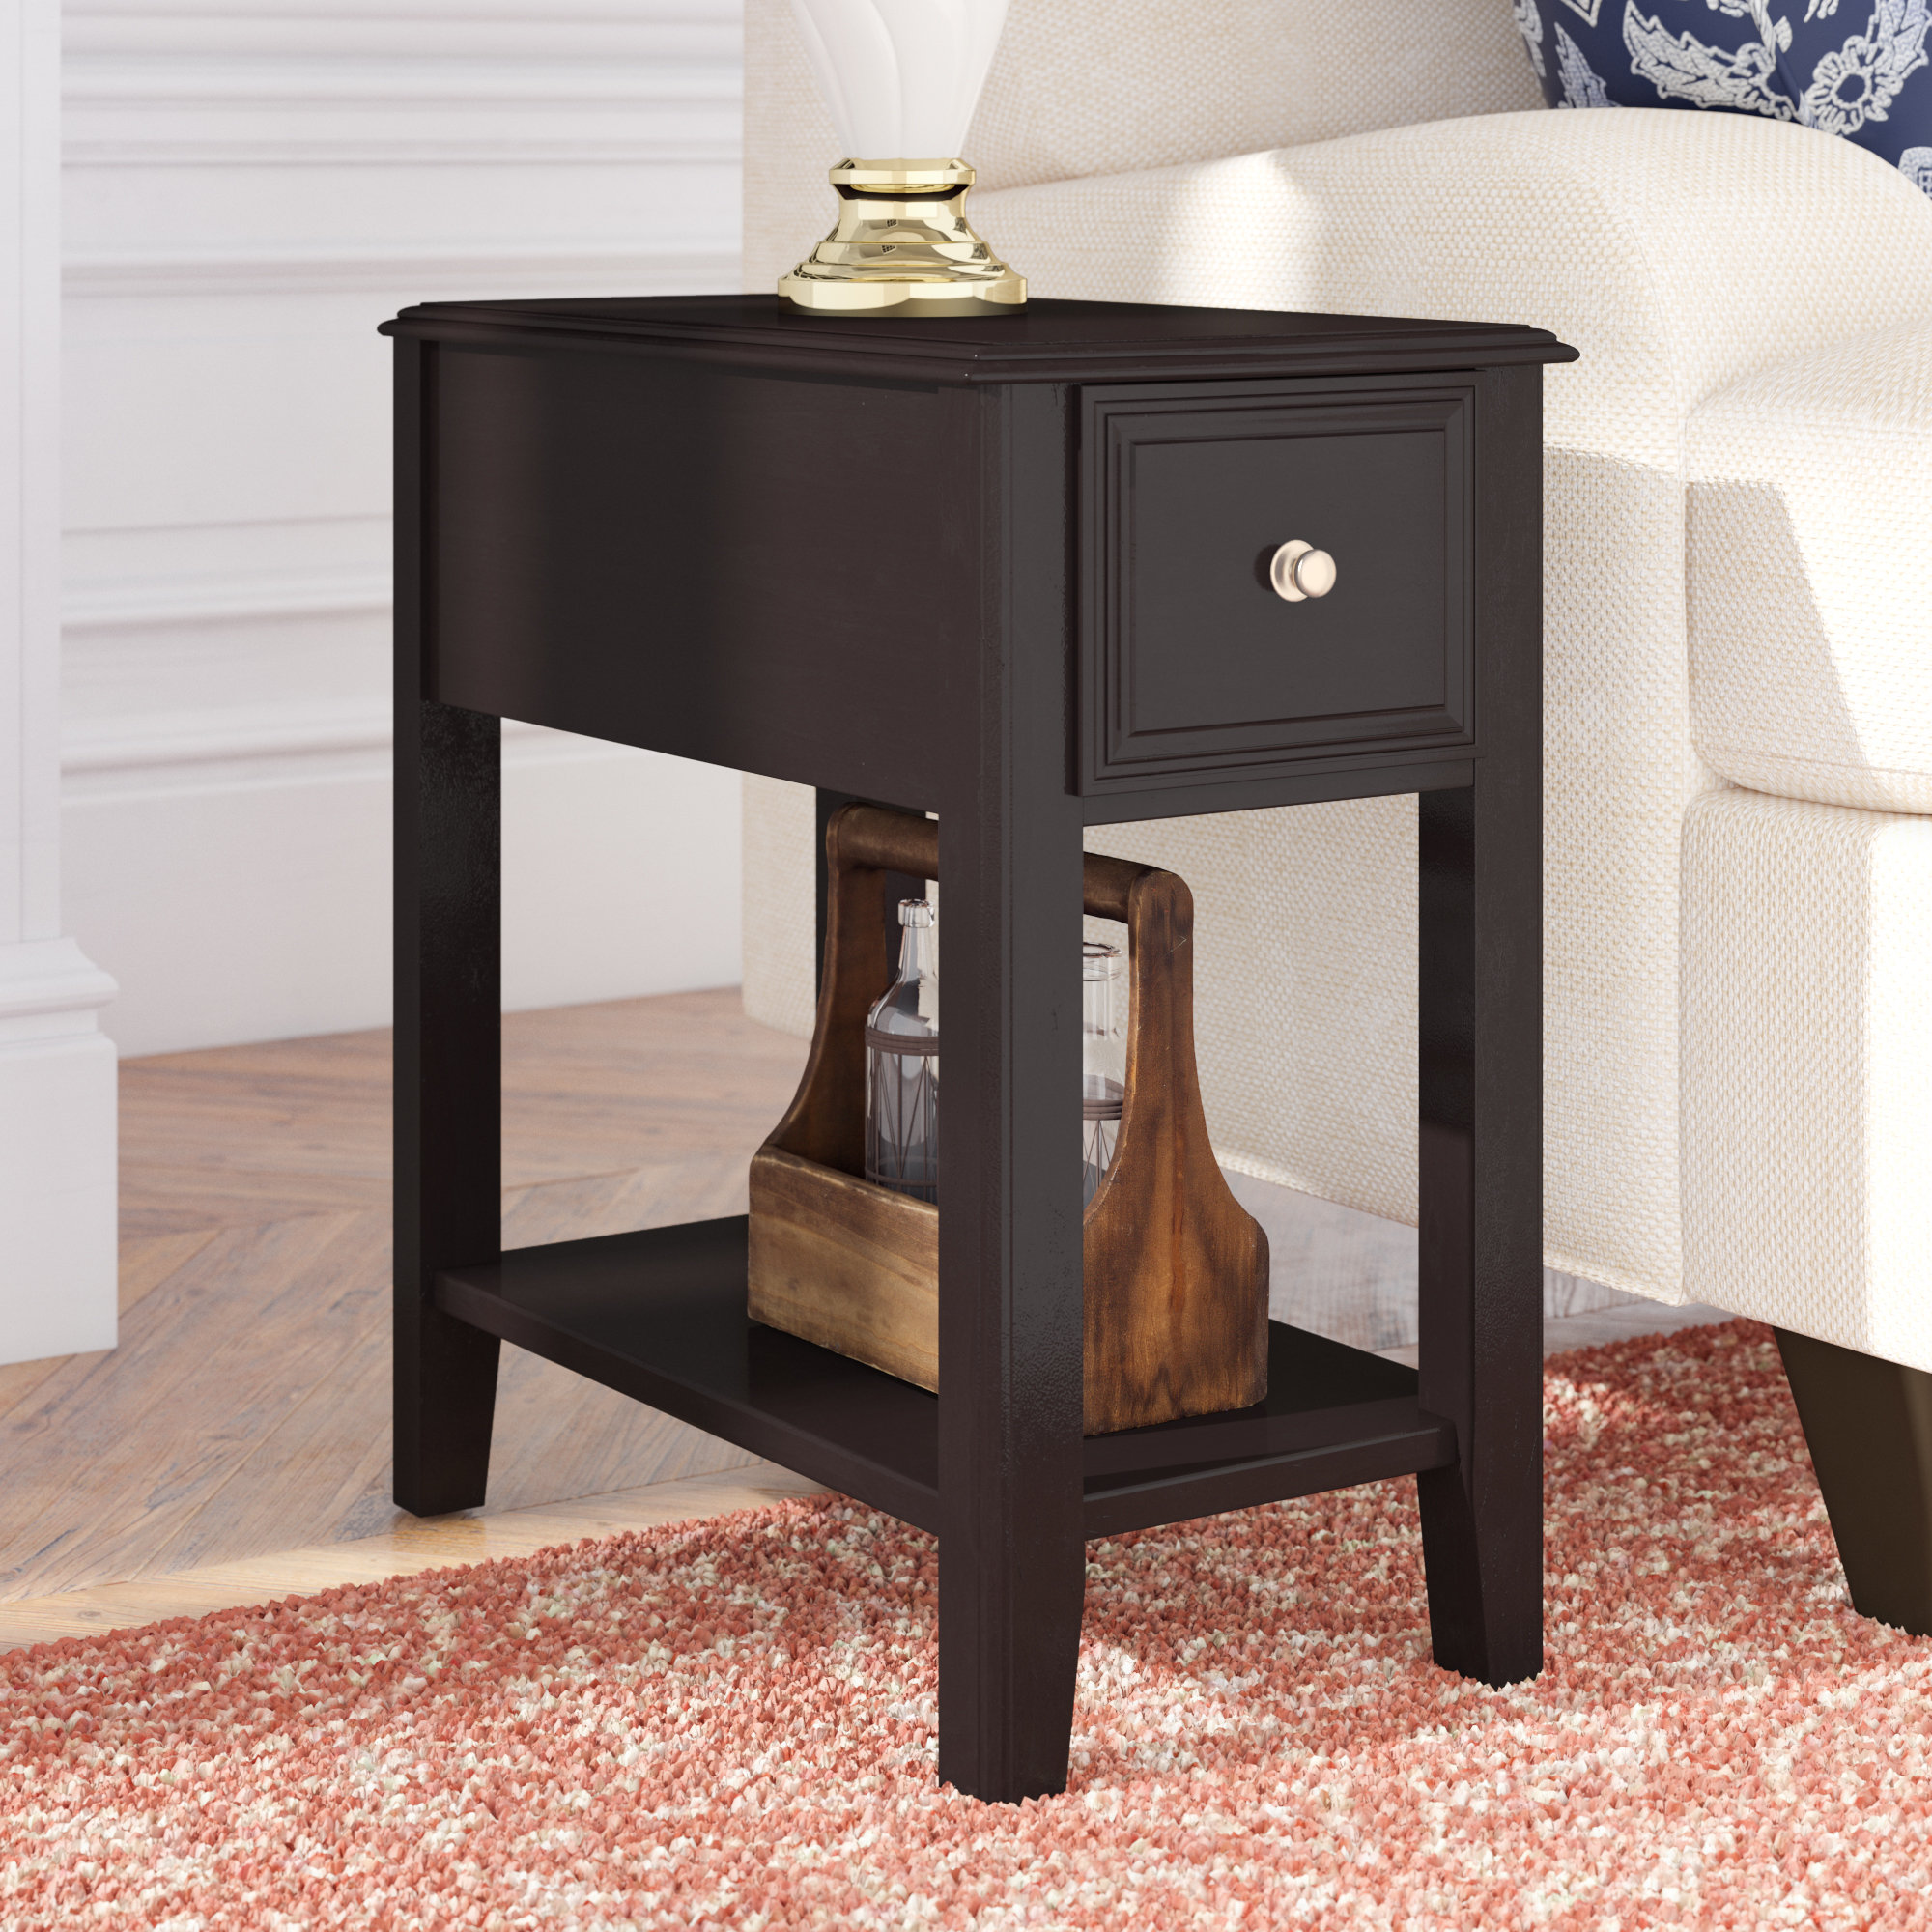 small end tables you love hancock table with storage patchen accent coffee designs walnut very oak side front door entry brass base ashley furniture glass bedding and curtain sets